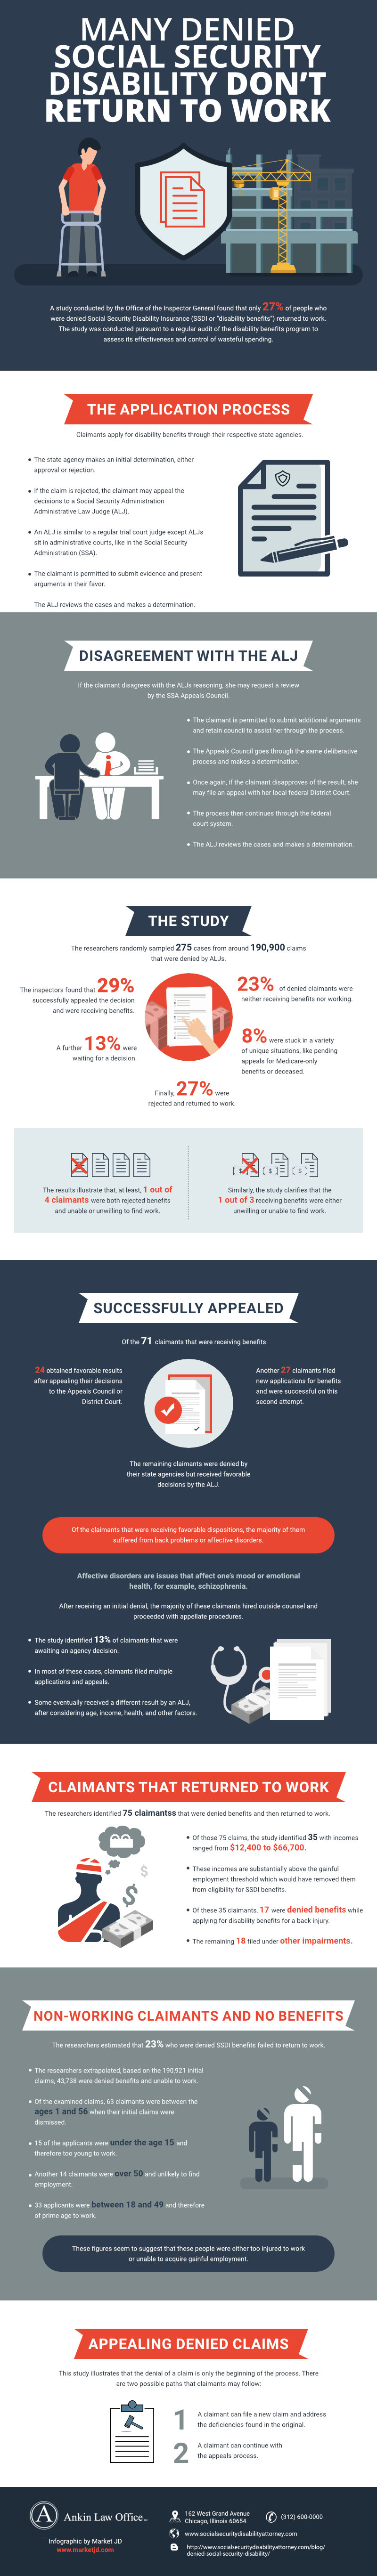 infographic_Returniing to Work After Being Denied Social Security Disability